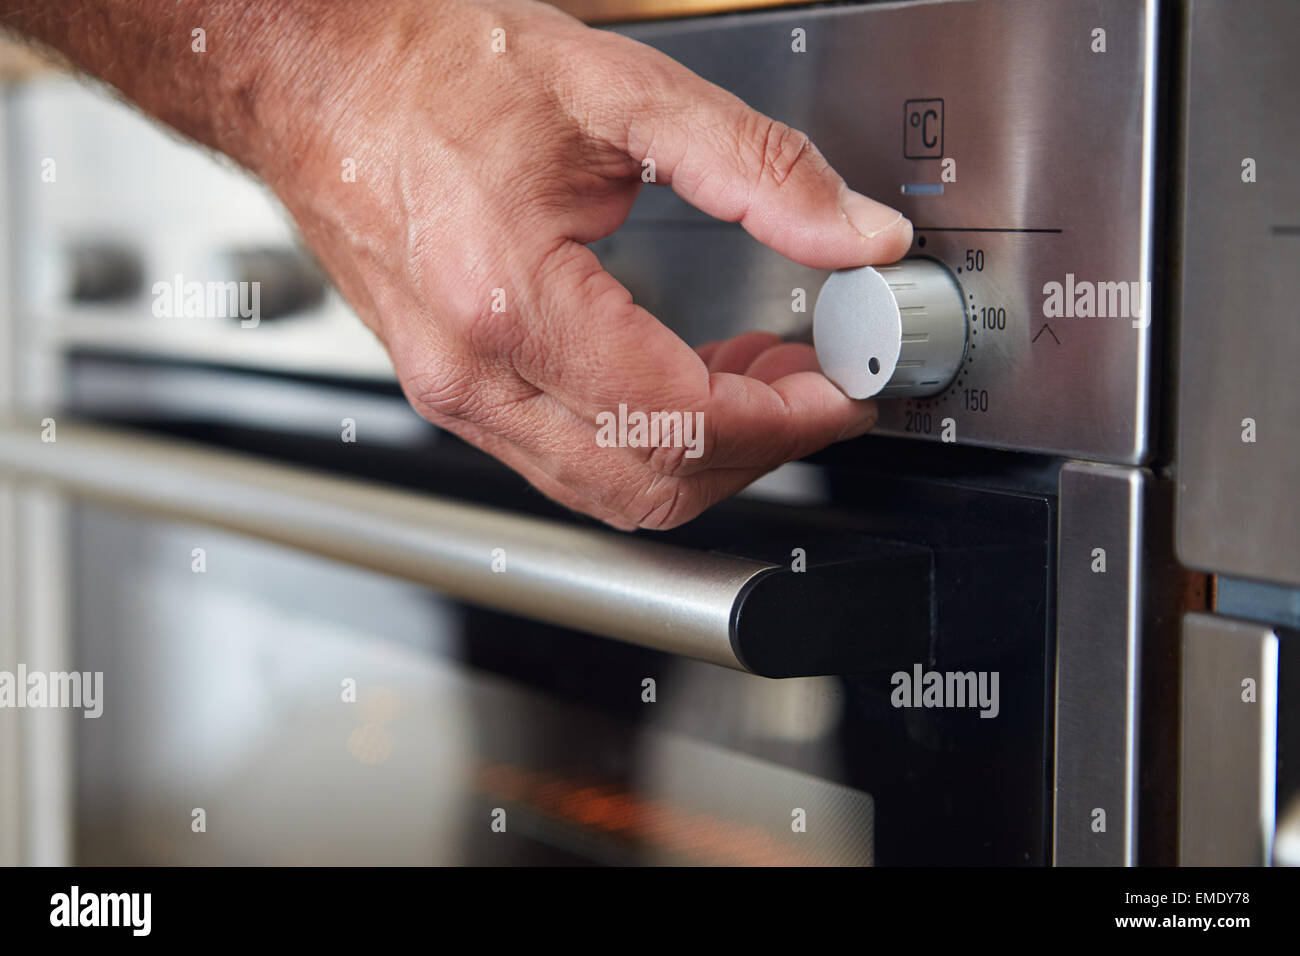 Close Up Of Hand Setting Temperature Control On Oven - Stock Image